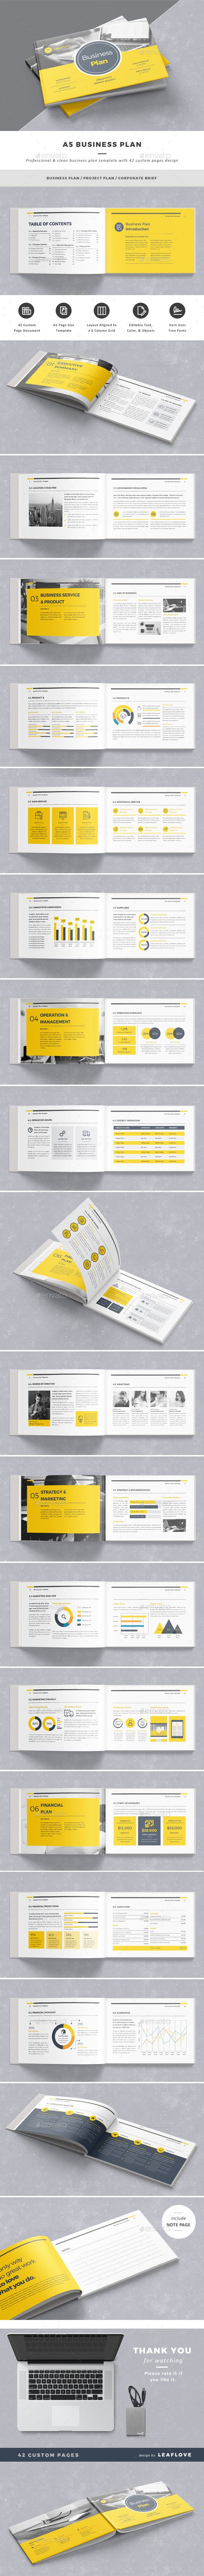 A5 Business Plan - Informational Brochures | Graphic Design ...